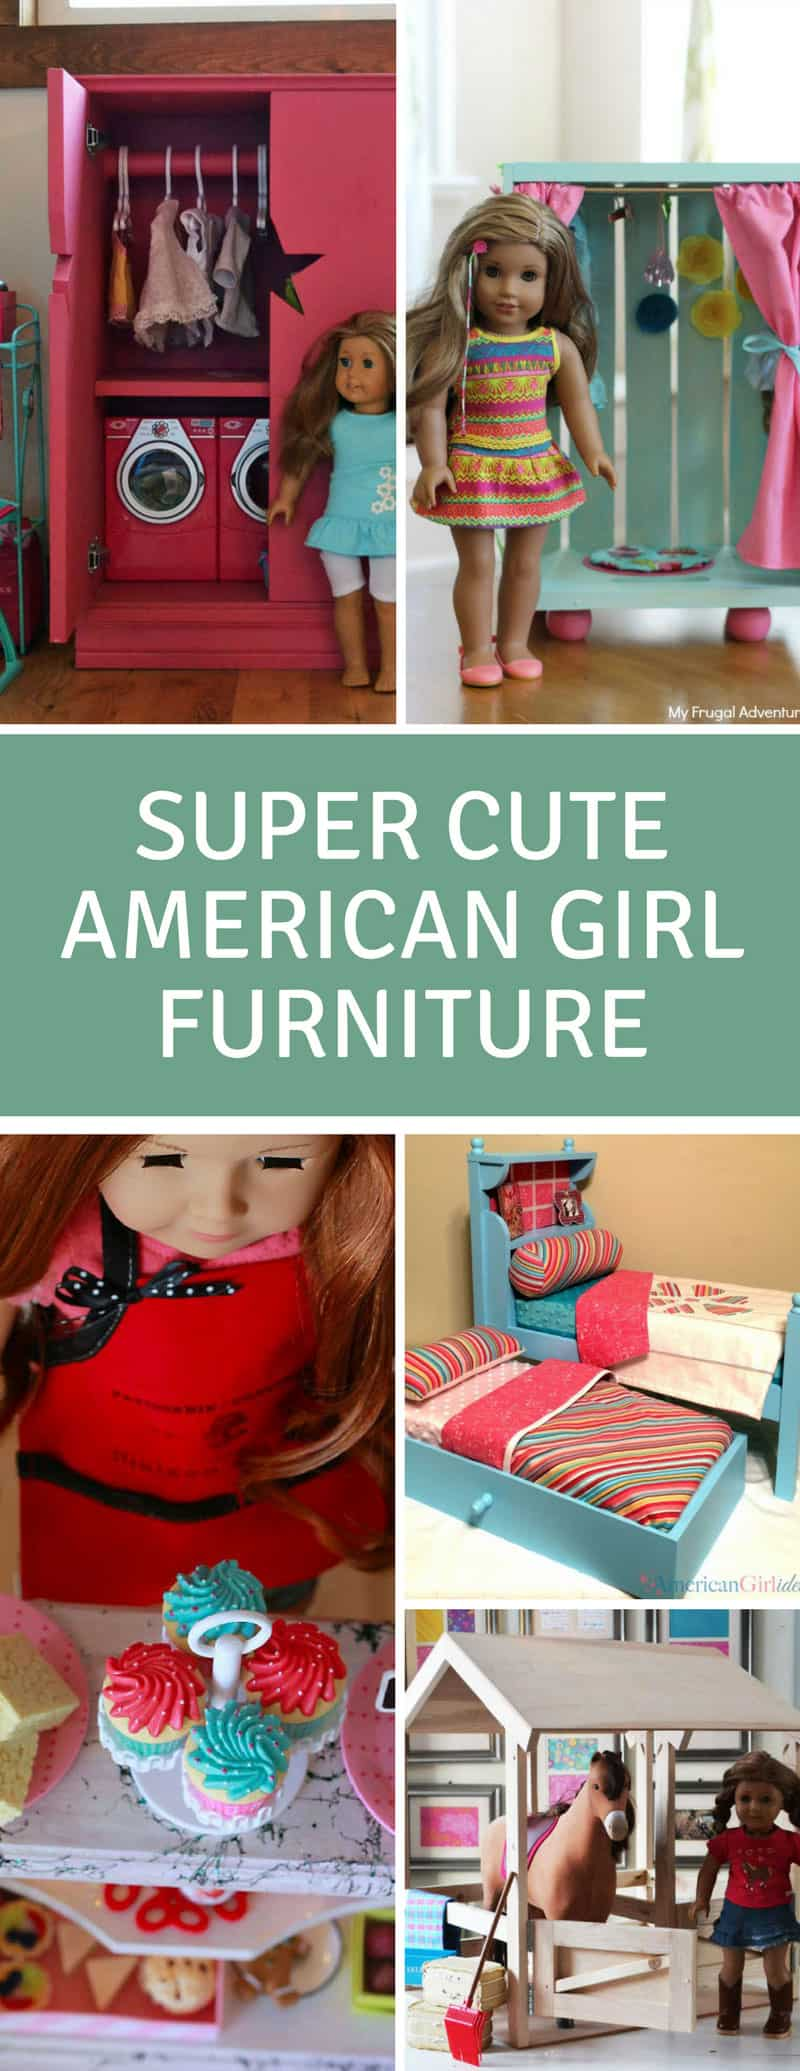 American Girl DIY Furniture - so many brilliant ideas here for making your own American Girl furniture so it doesn't break the bank! Fits any 18 inch doll really! #DIY #toys #AmericanGirl